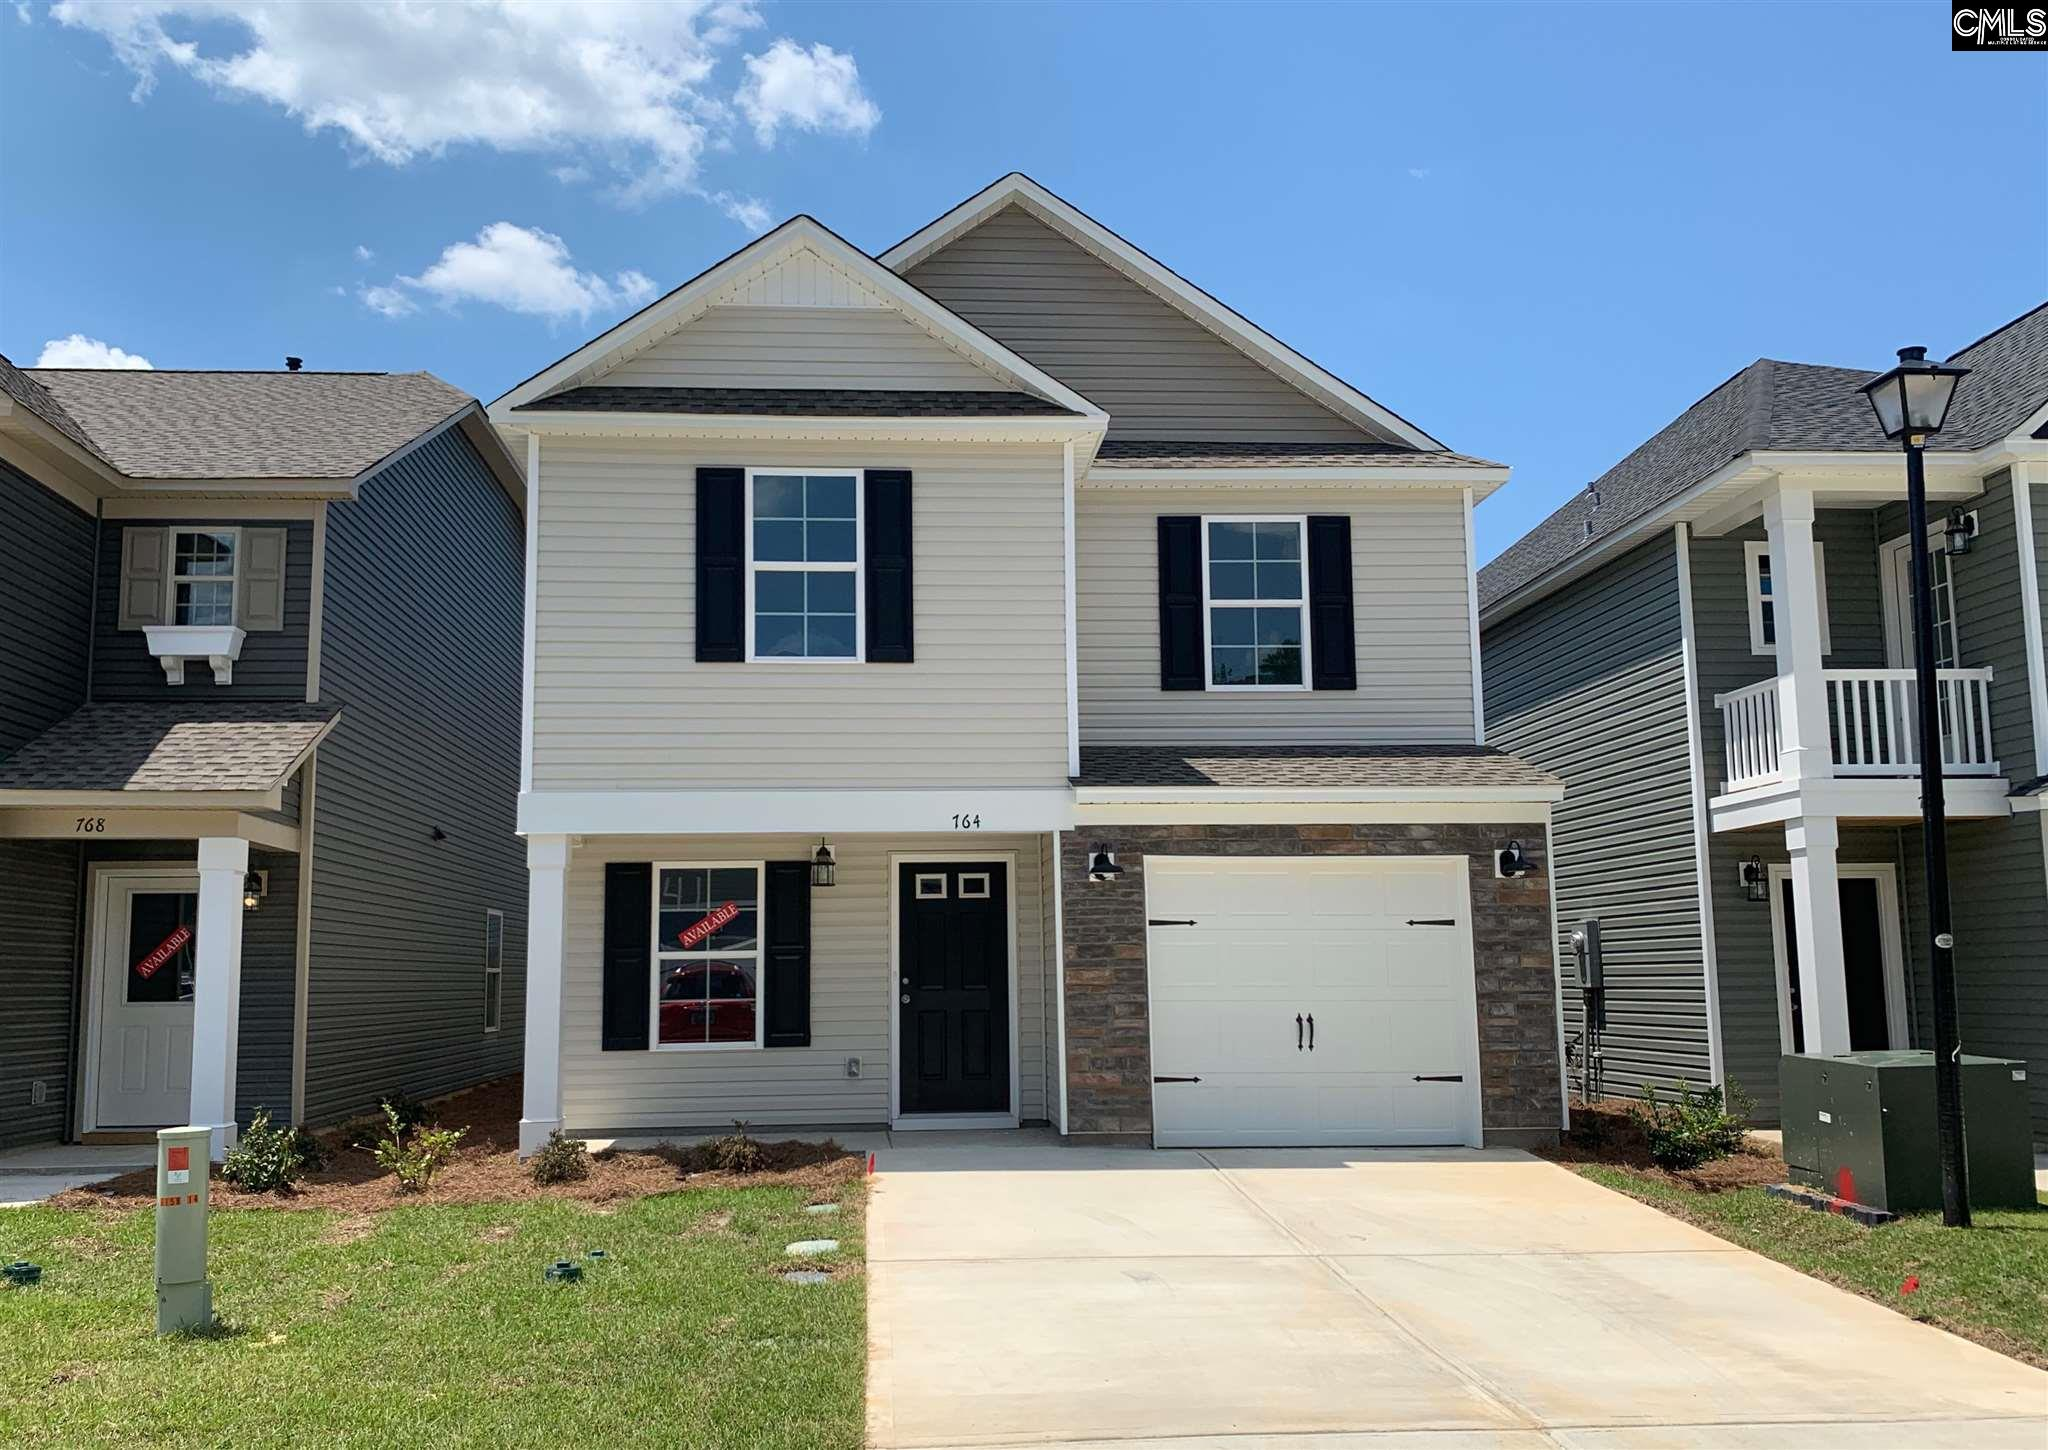 764 Dawsons Park Lexington, SC 29072